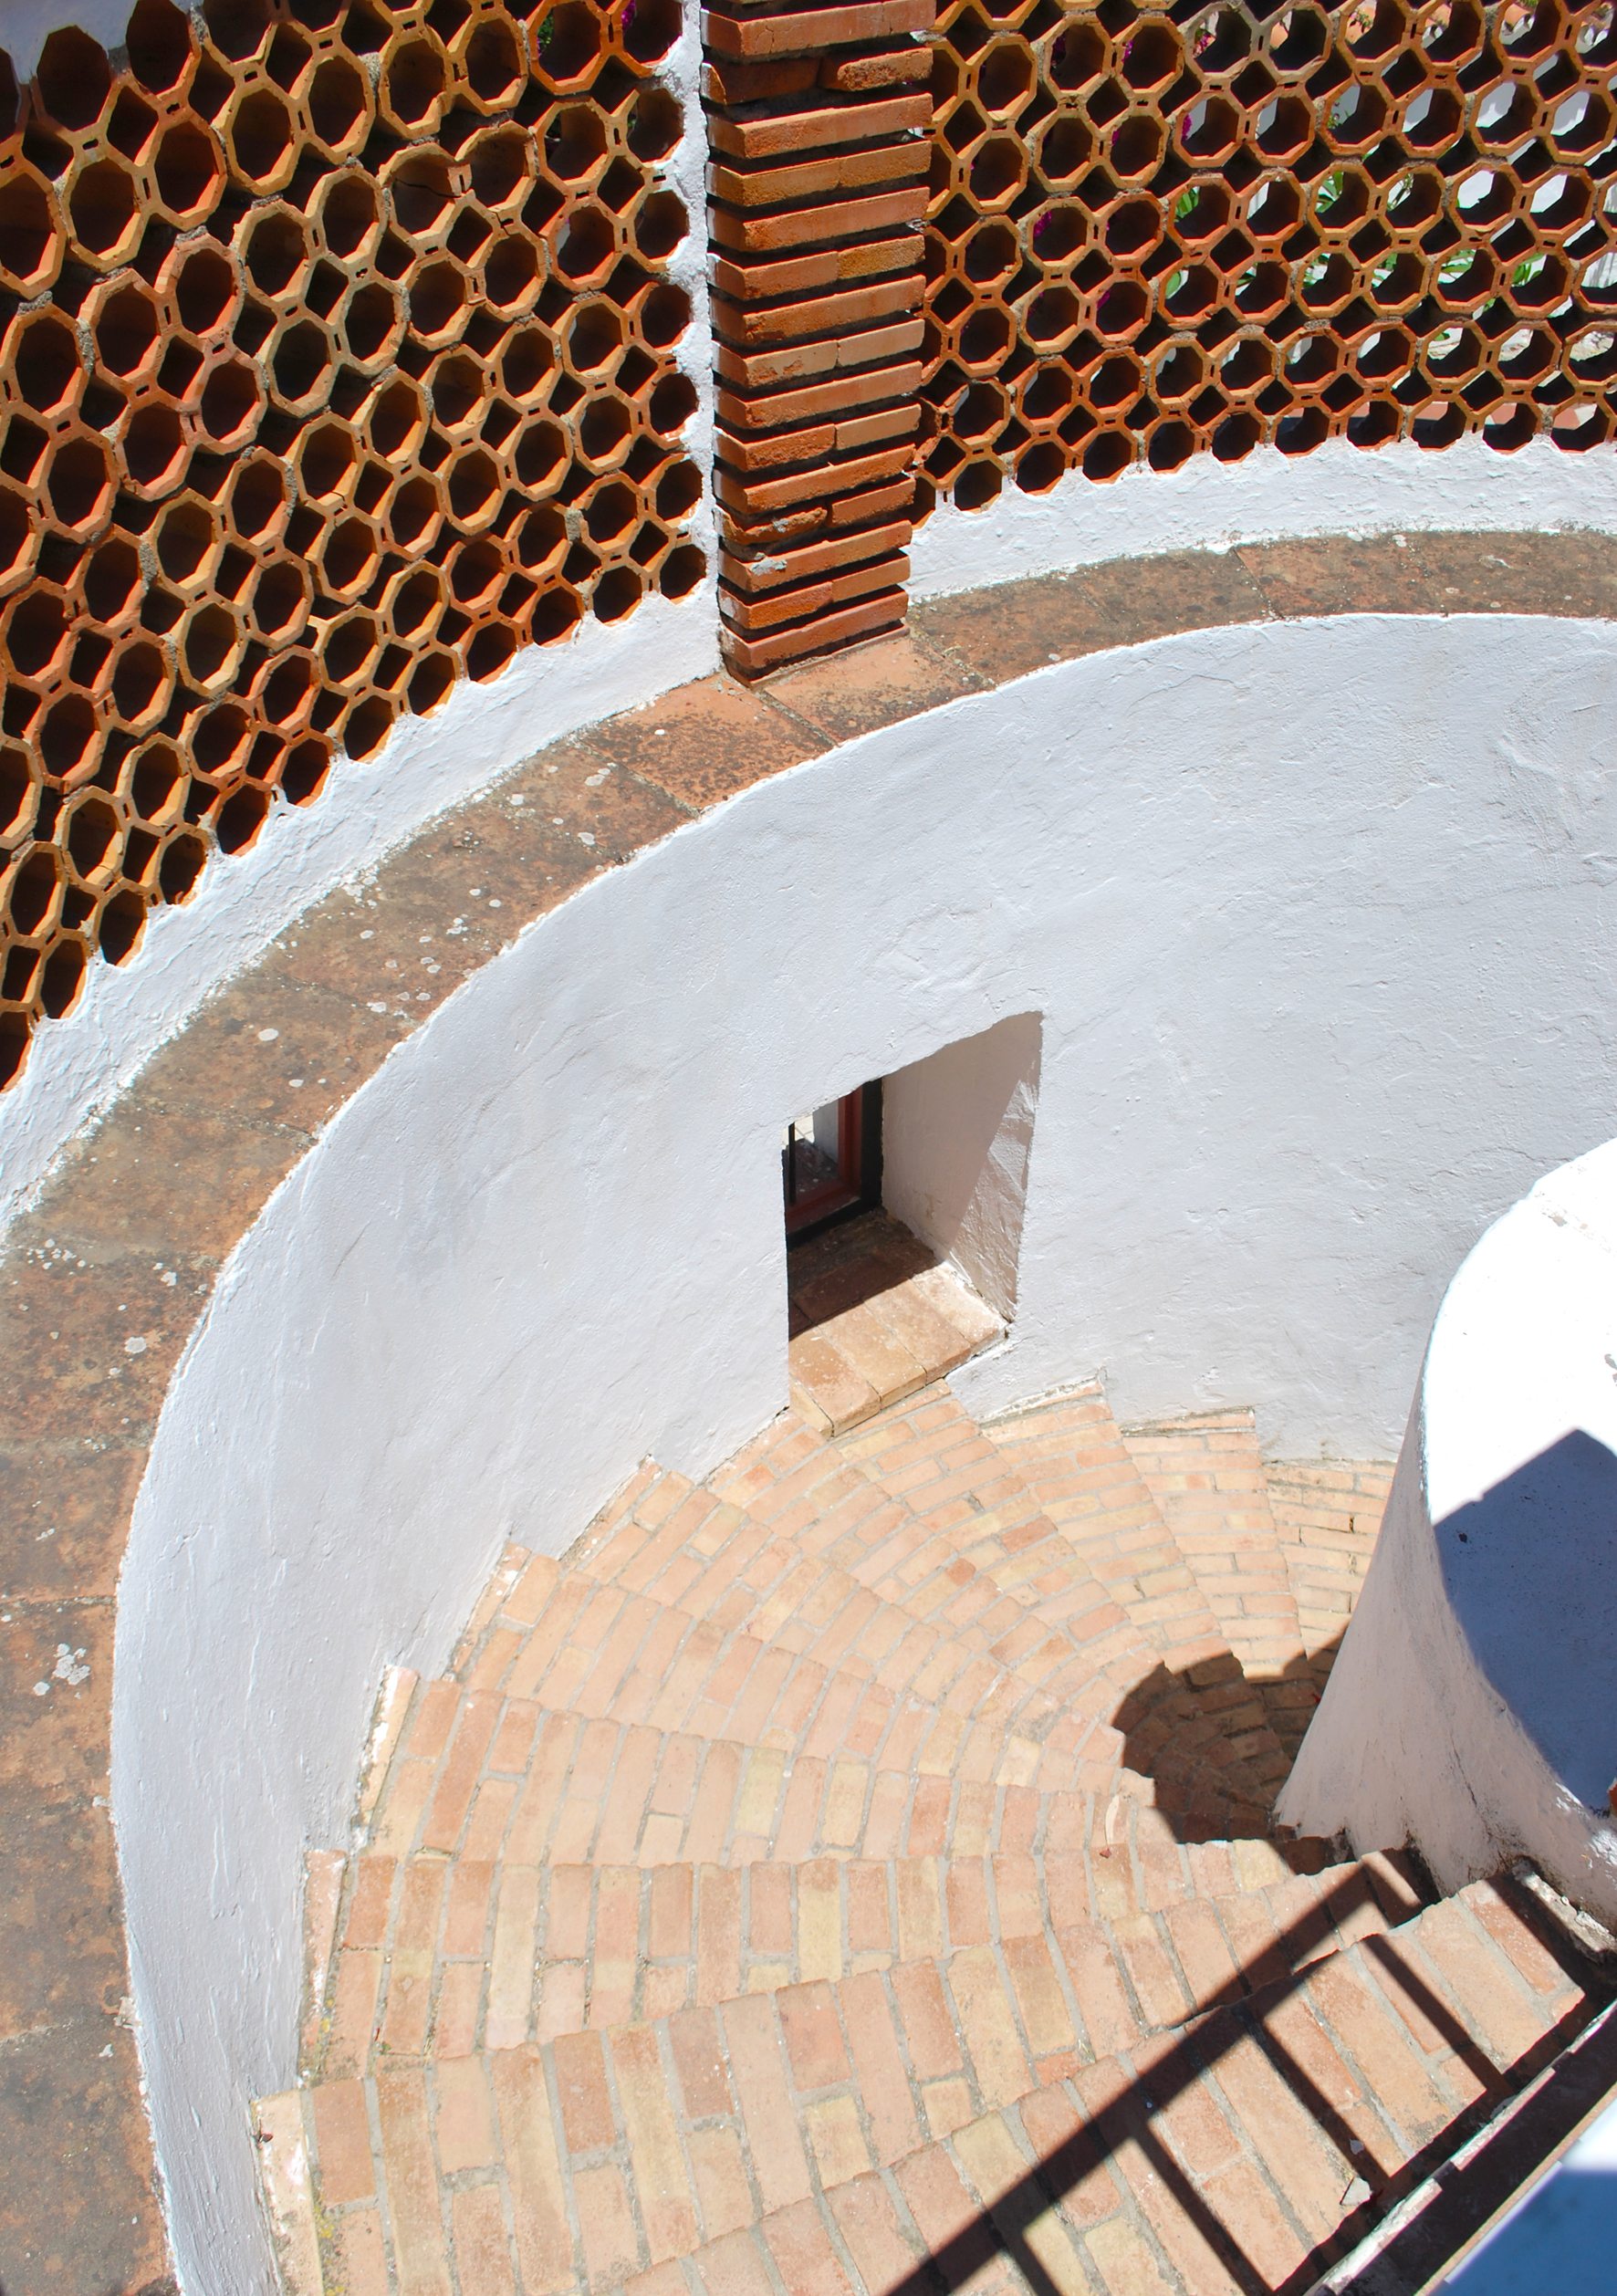 The spiral stairwell leading to the cellar.